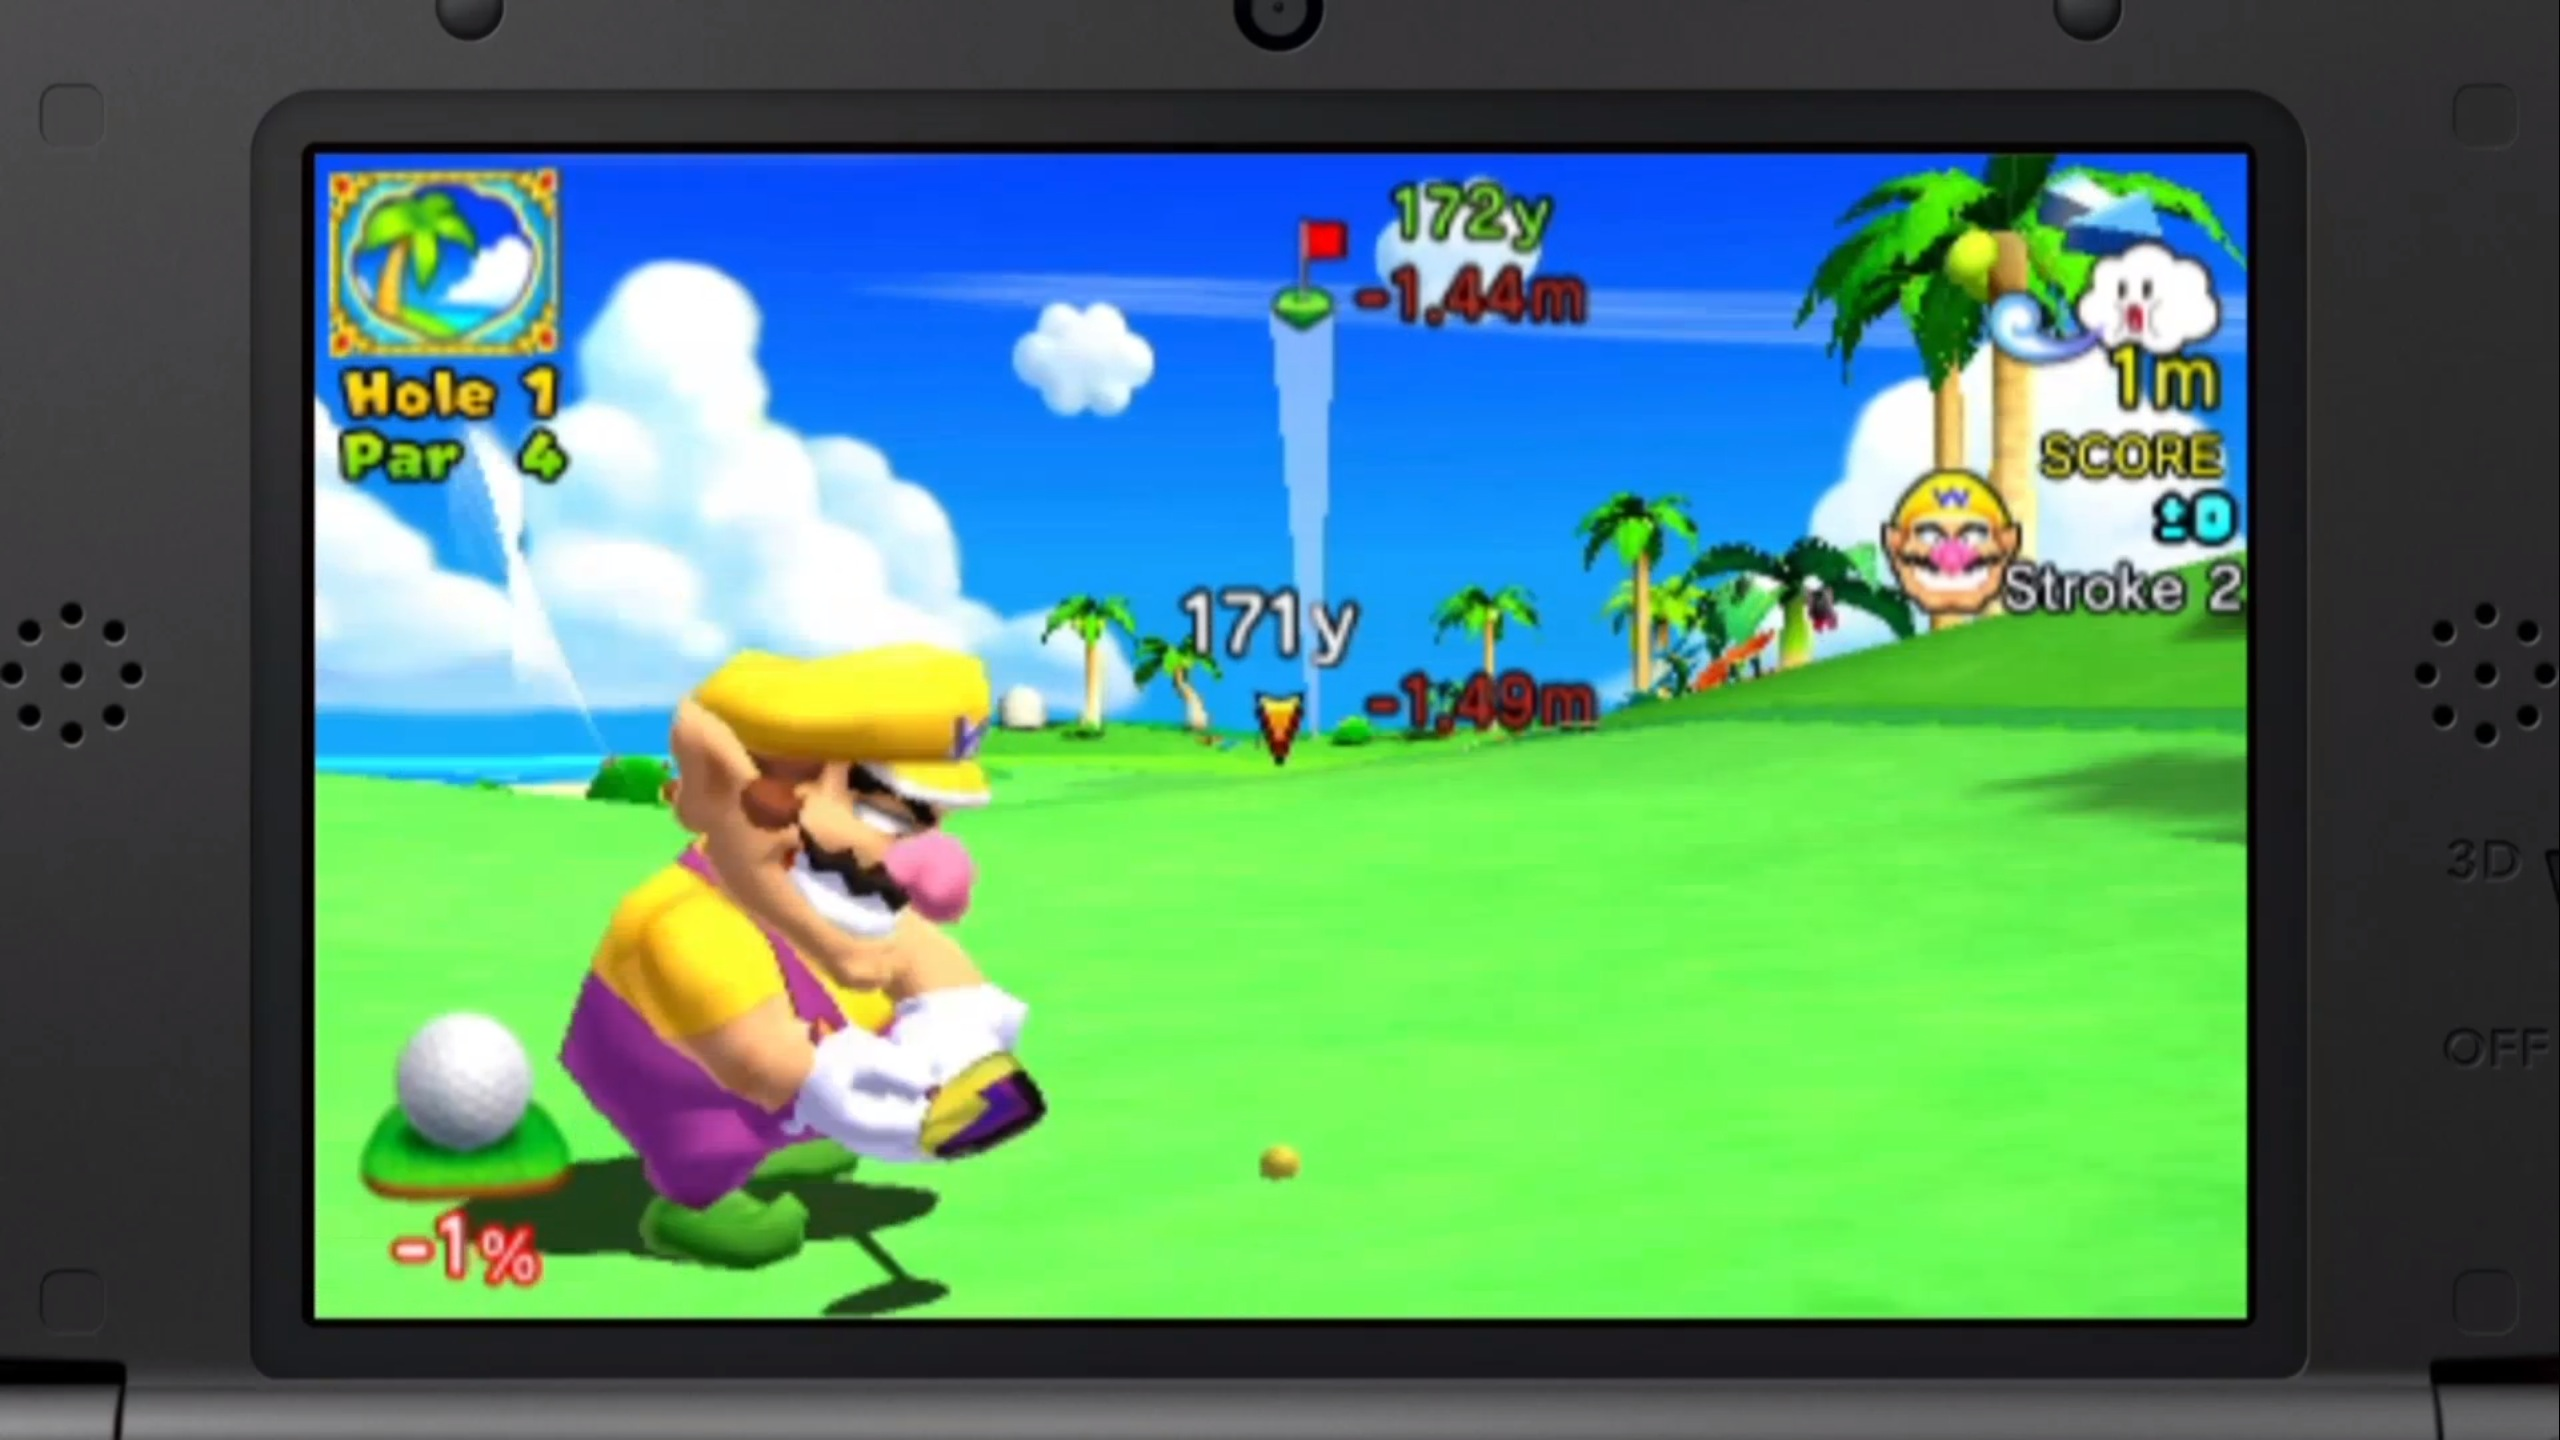 Mario Golf Latest Nintendo Direct Press Conference: Focuses On New 3DS Titles